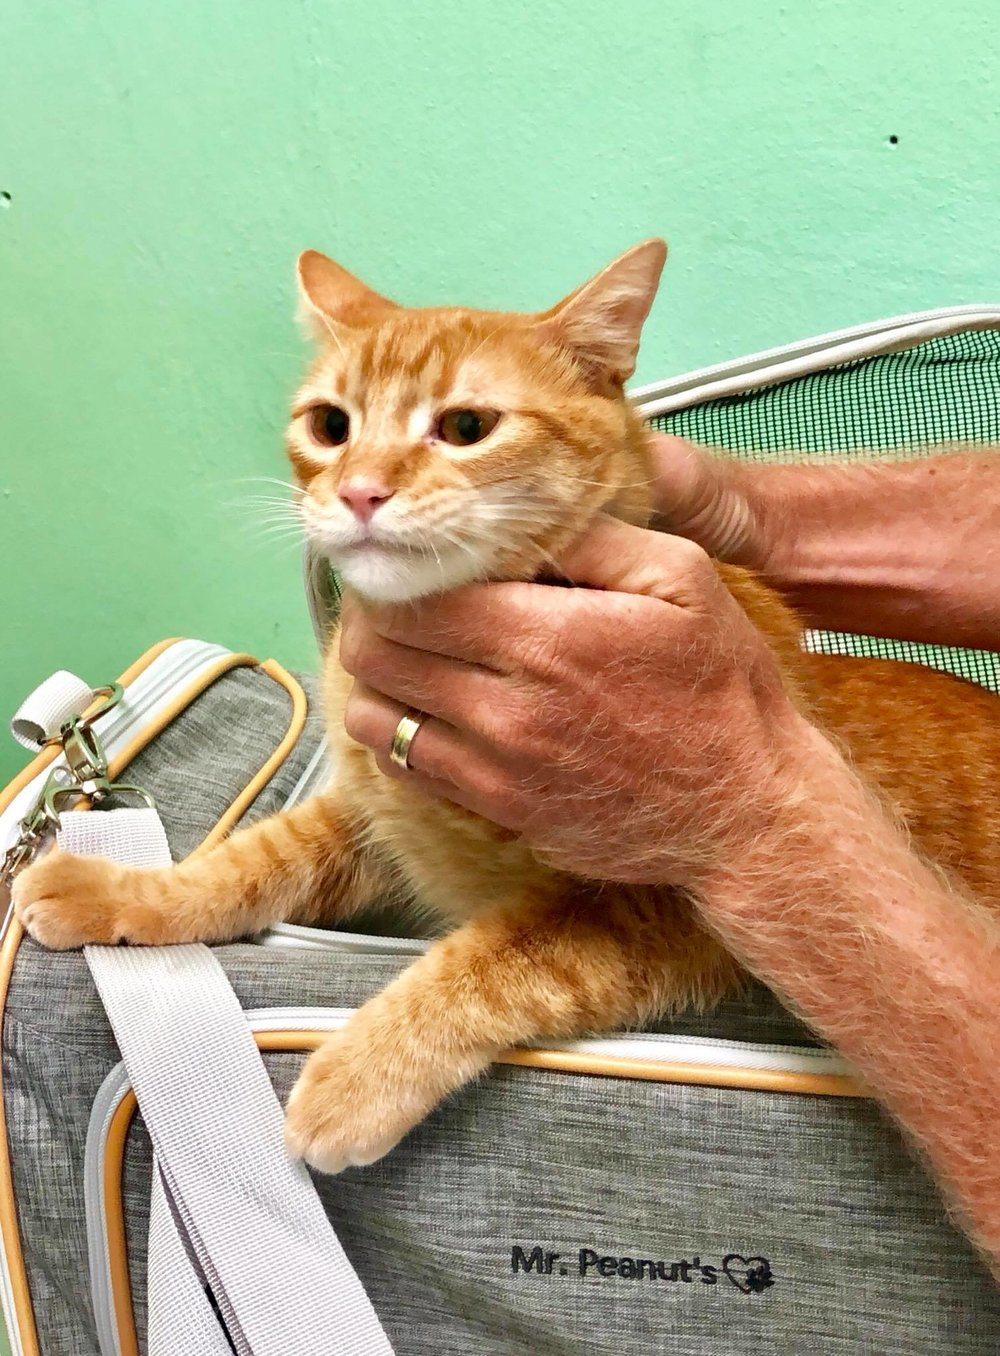 Sailing Life Day 401 Visited the veterinarian for the two cats - Captain Ahab and Little Zissou7.jpg